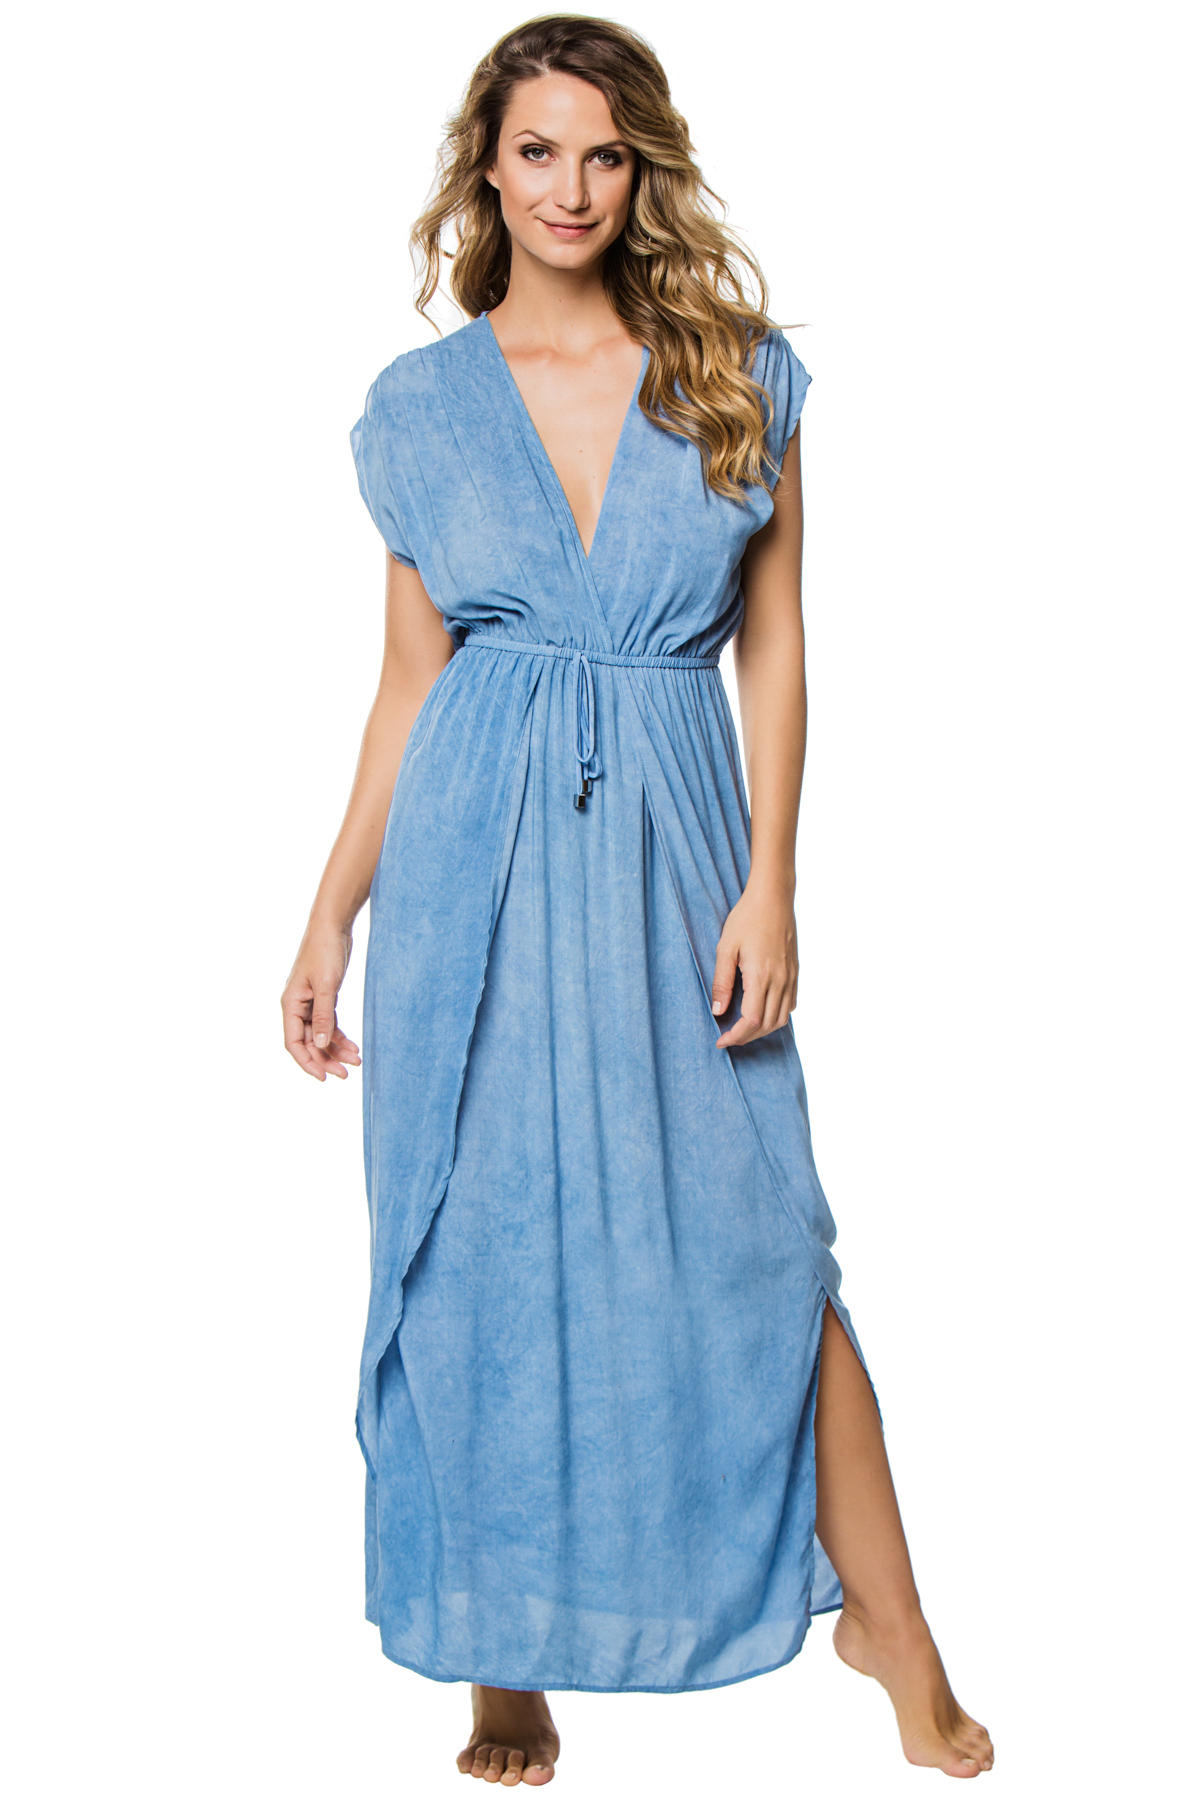 Deep V-Neck Caftan - Washed Blue 1